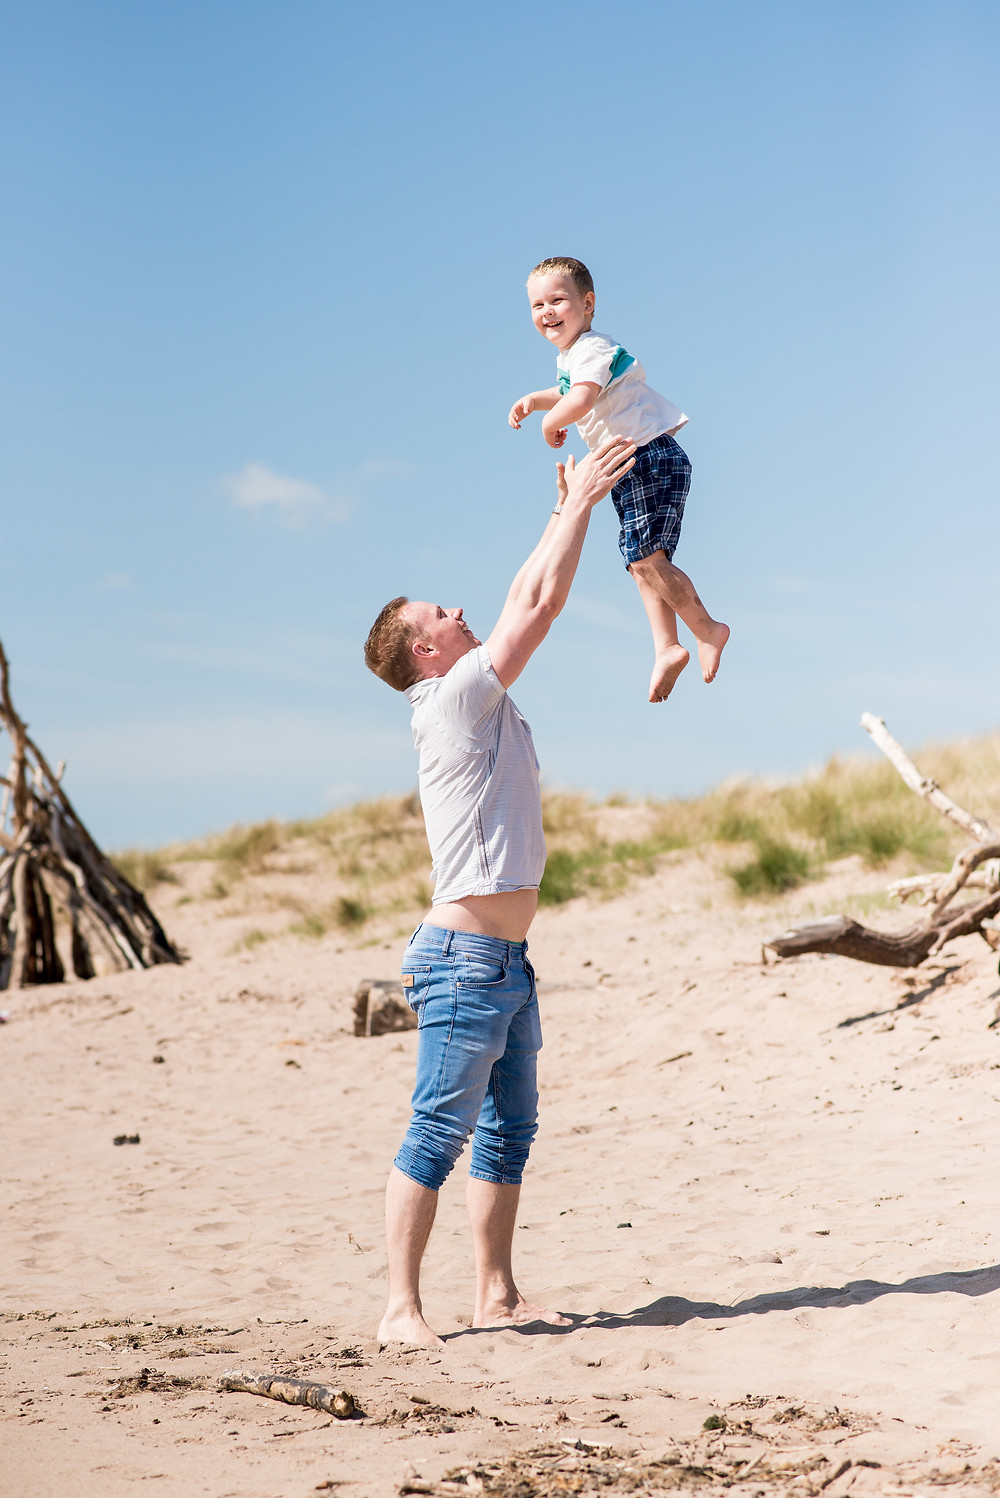 Best-aberdeen-family-children-photographer-montrose-arbroath-outdoor-st-cyrus-beach-dad-throwing-boy-in-air